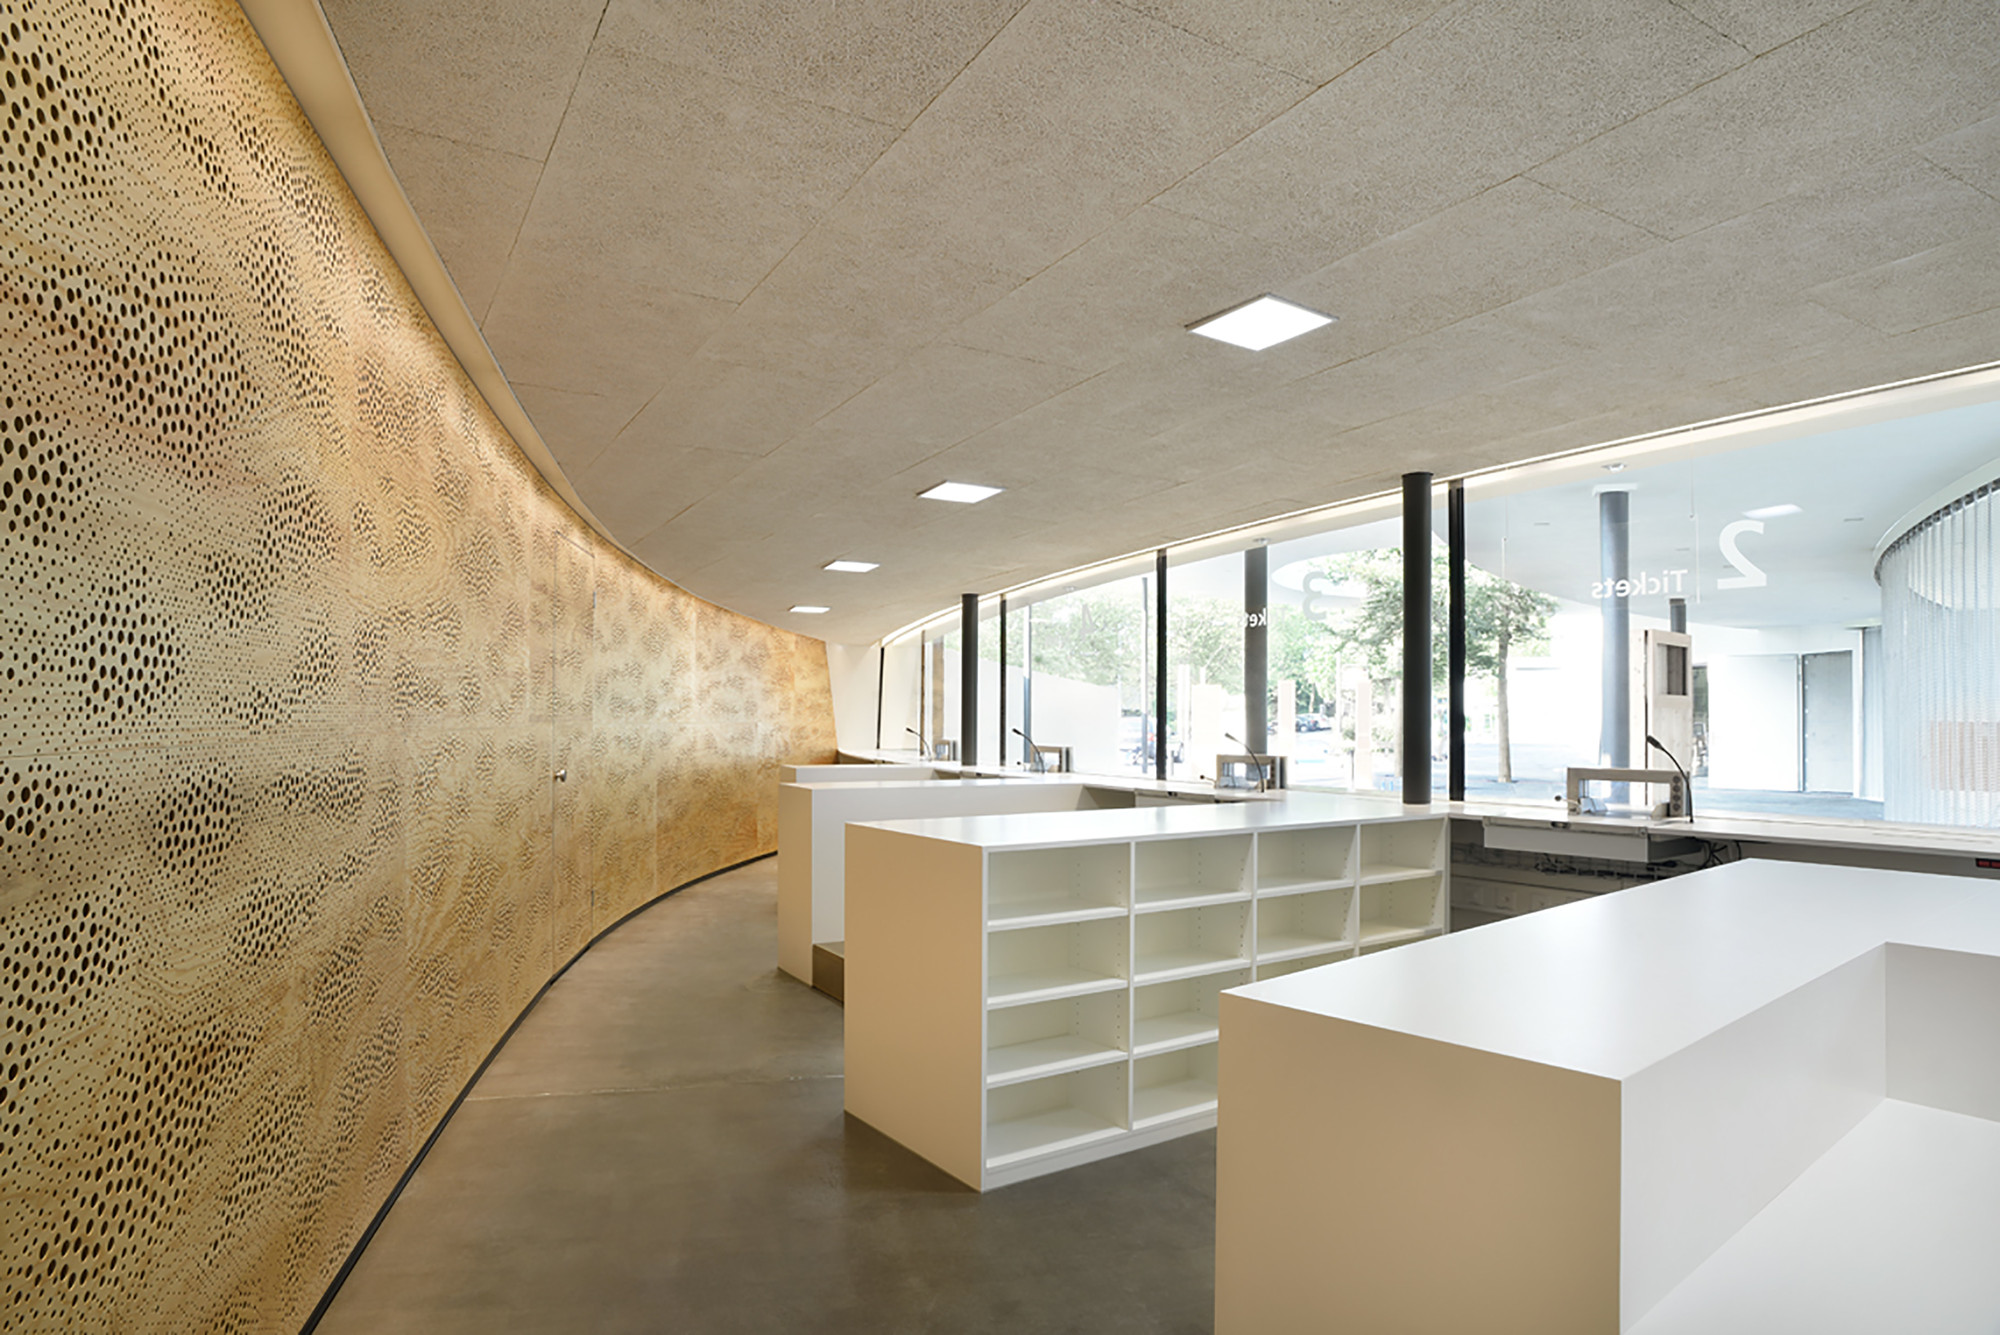 Foyer In Architecture : Gallery of zurich zoo foyer renovation extension l p